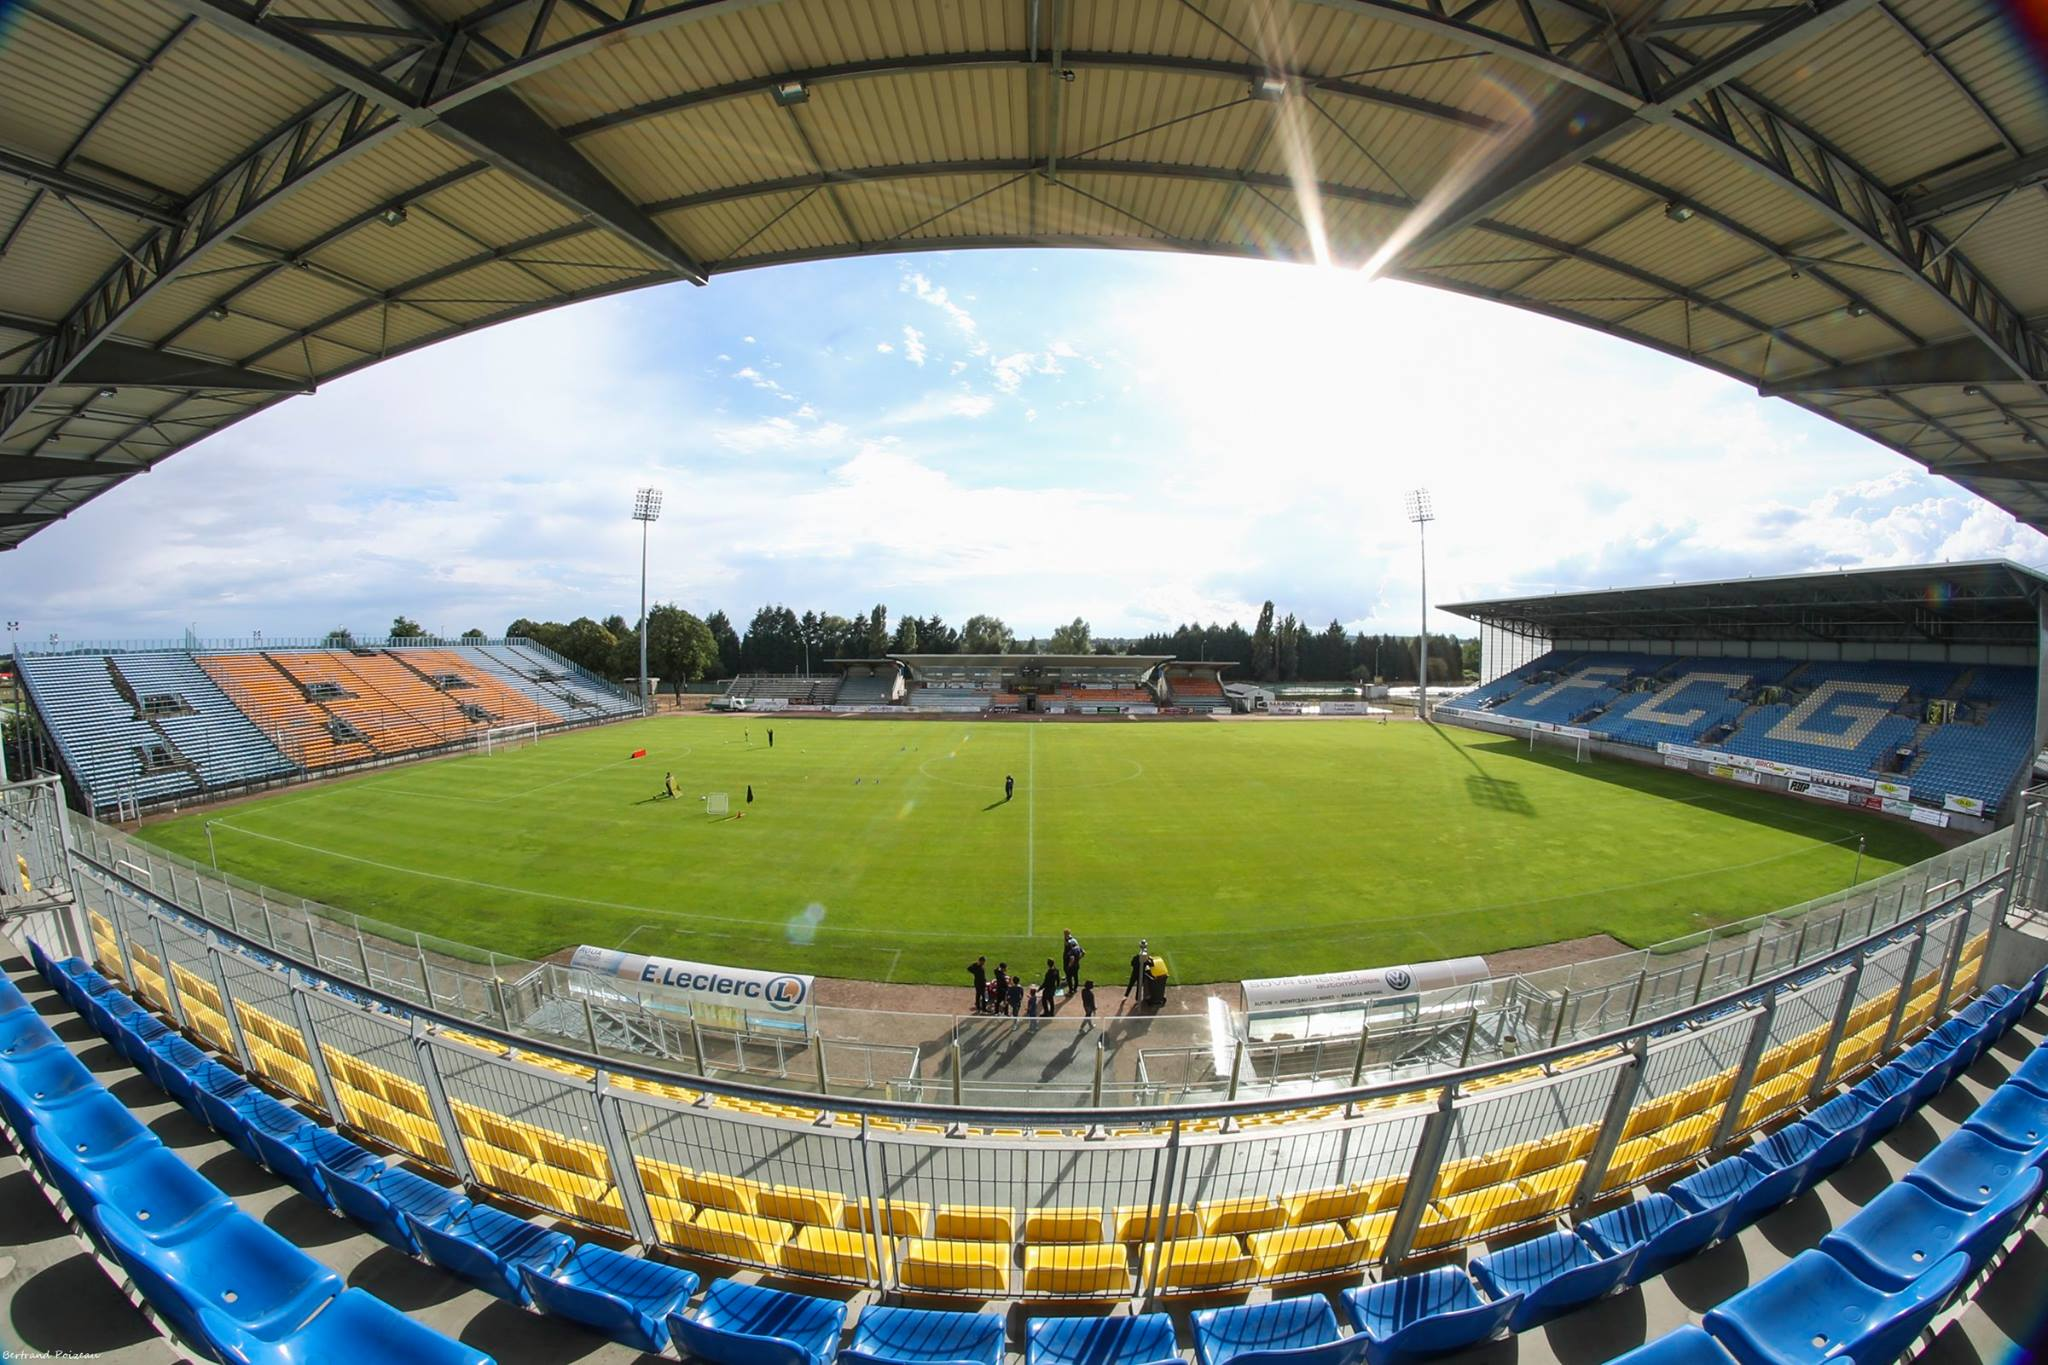 Le stade jean laville football club de gueugnon - Tribune vip stade de france ...